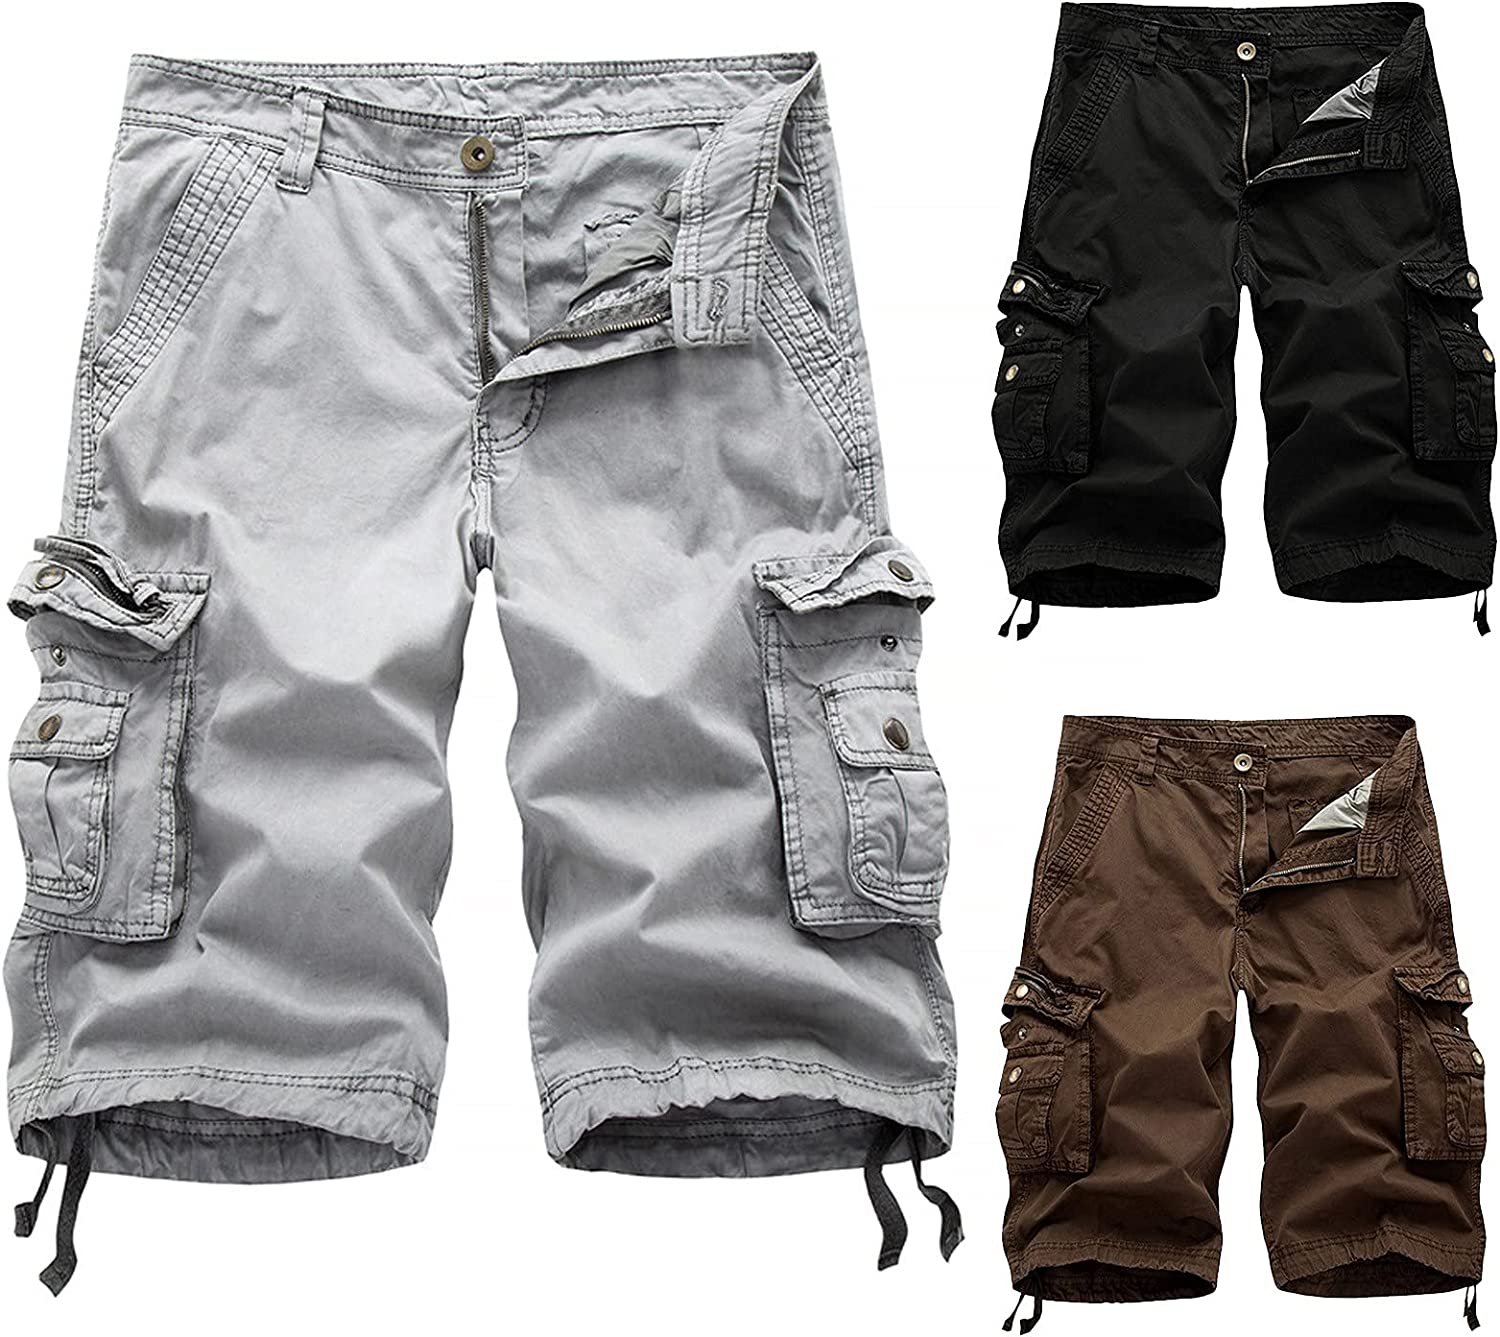 MODOQO Men's Relaxed Fit Multi Pockets Big and Tall Size Pure Color Outdoor Cargo Shorts